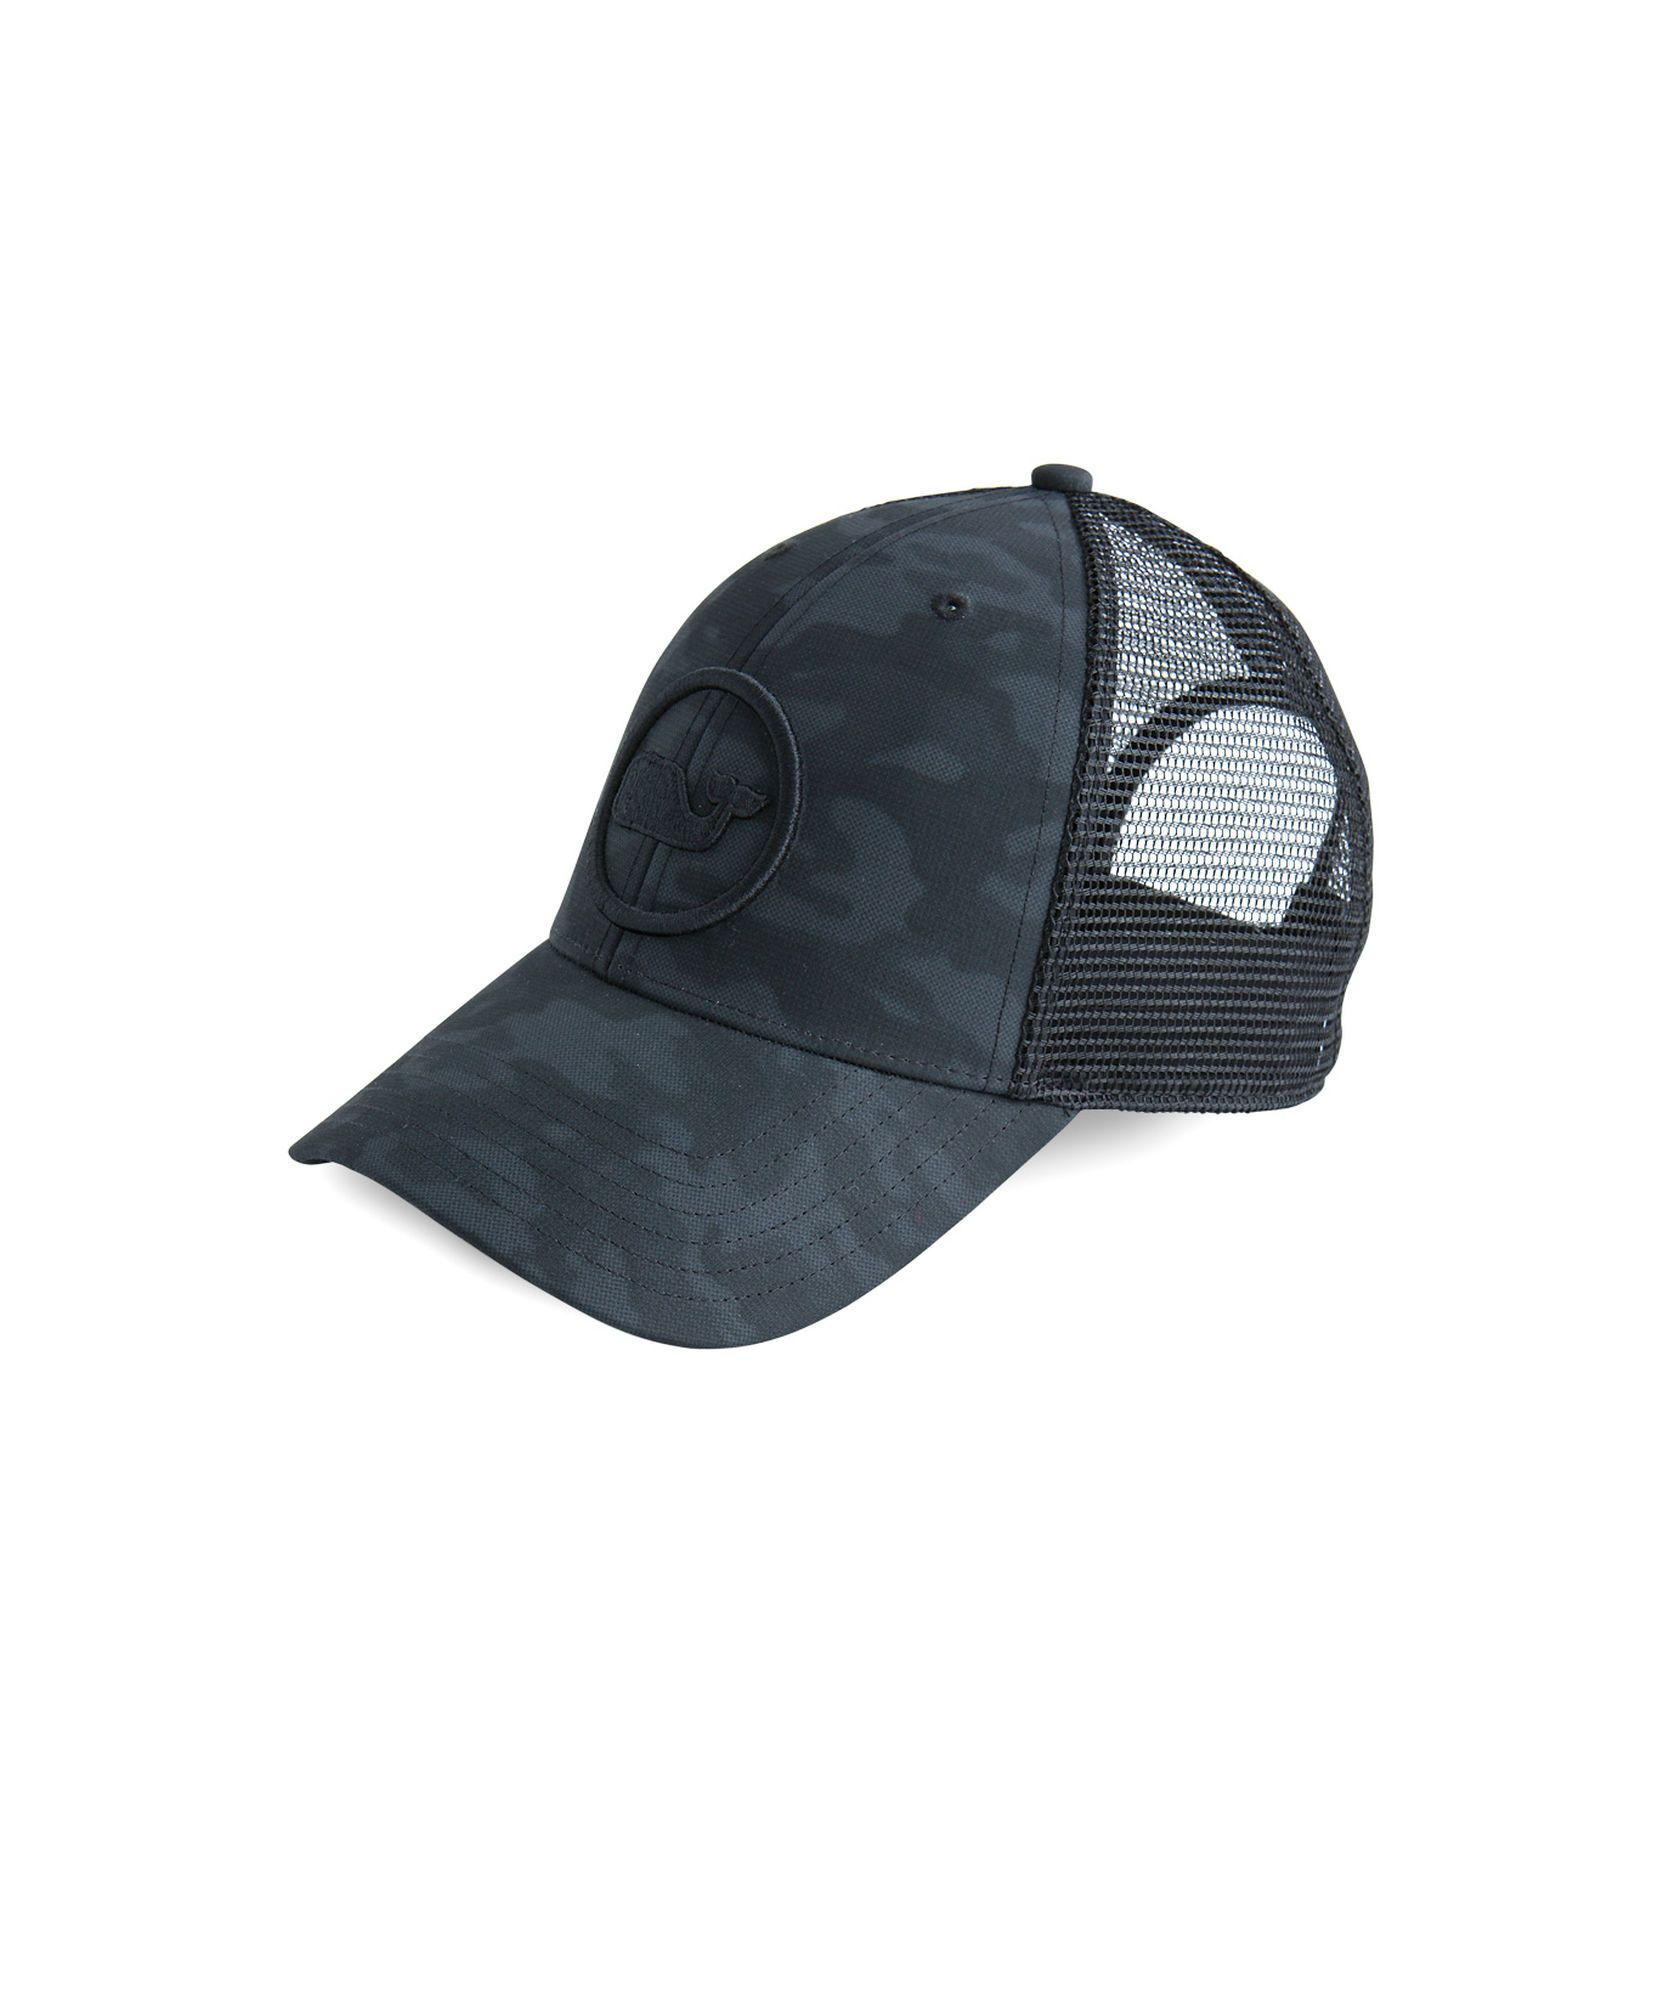 3c89139e0 Shop Embroidered Whale Dot Performance Camo Trucker Hat at vineyard ...